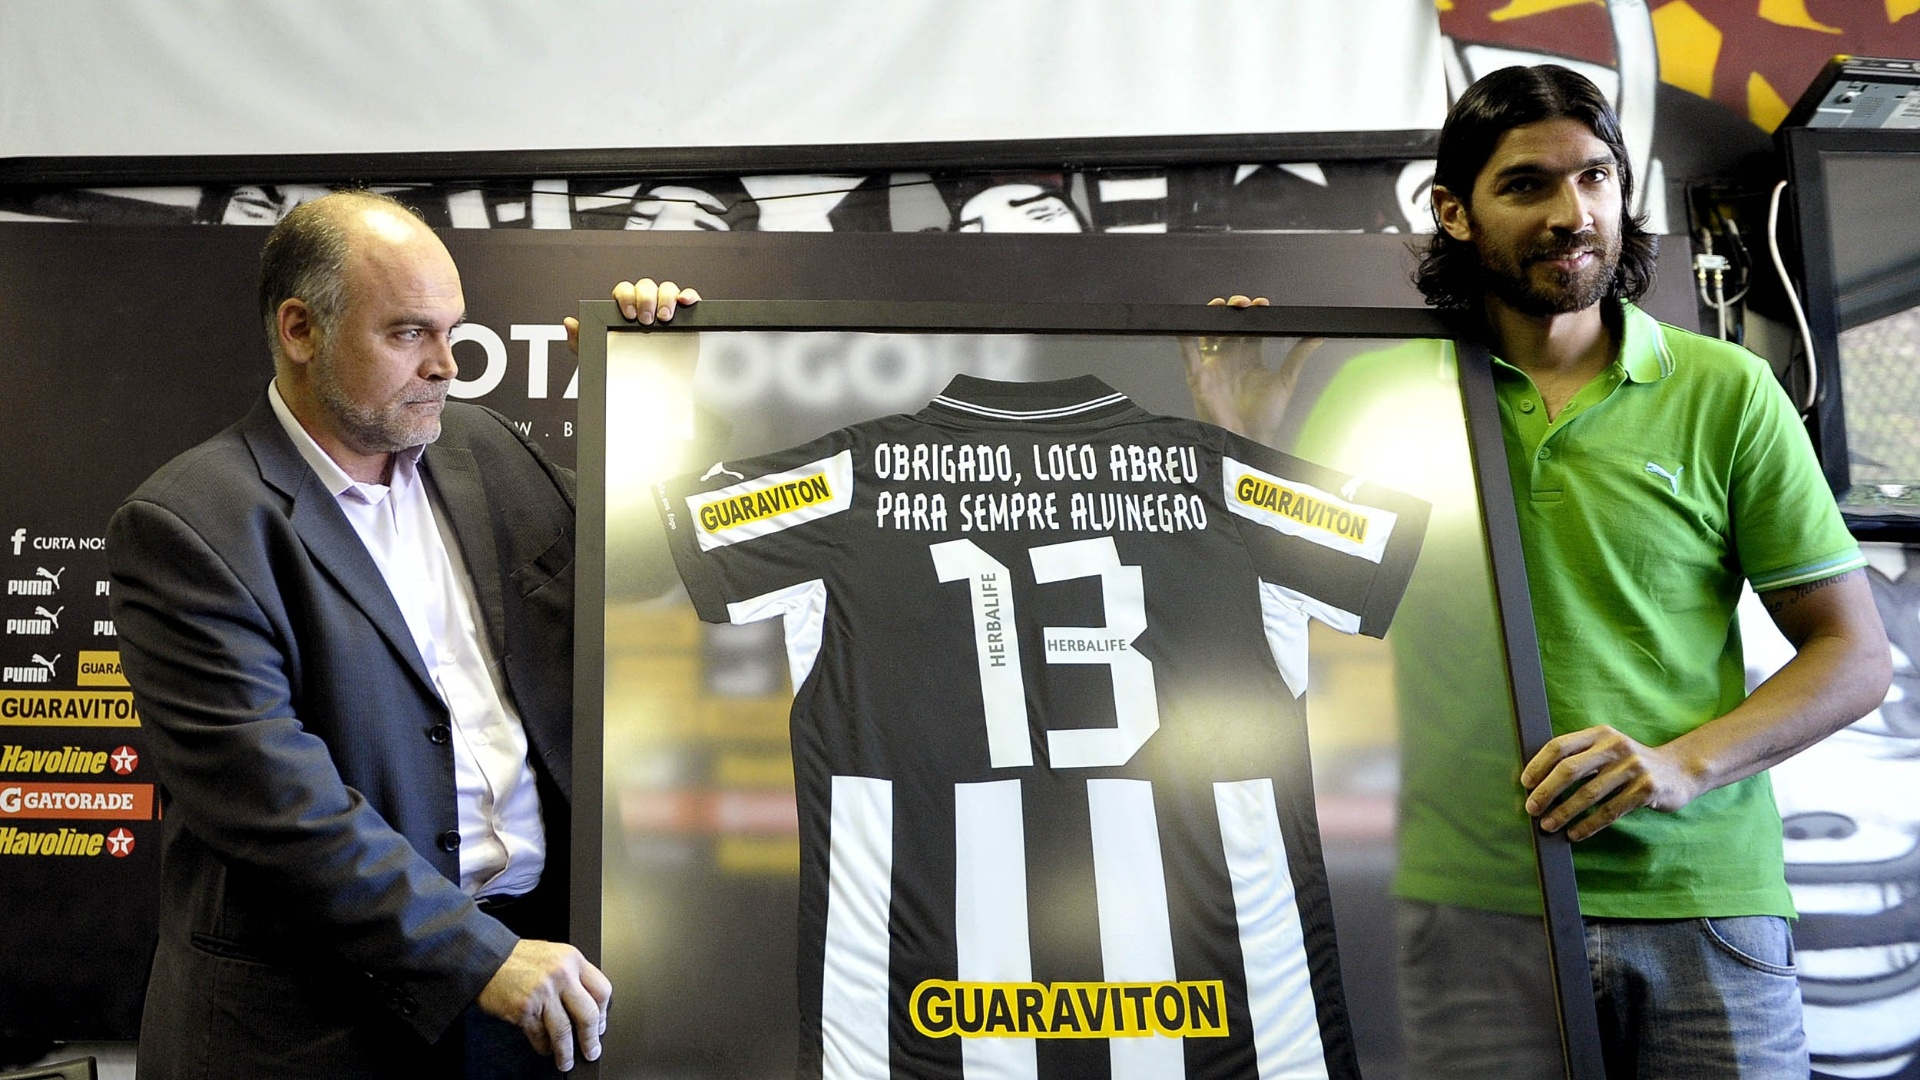 Loco Abreu recebe  homenageado e recebe camisa do presidente do Botafogo (06/07/2012)